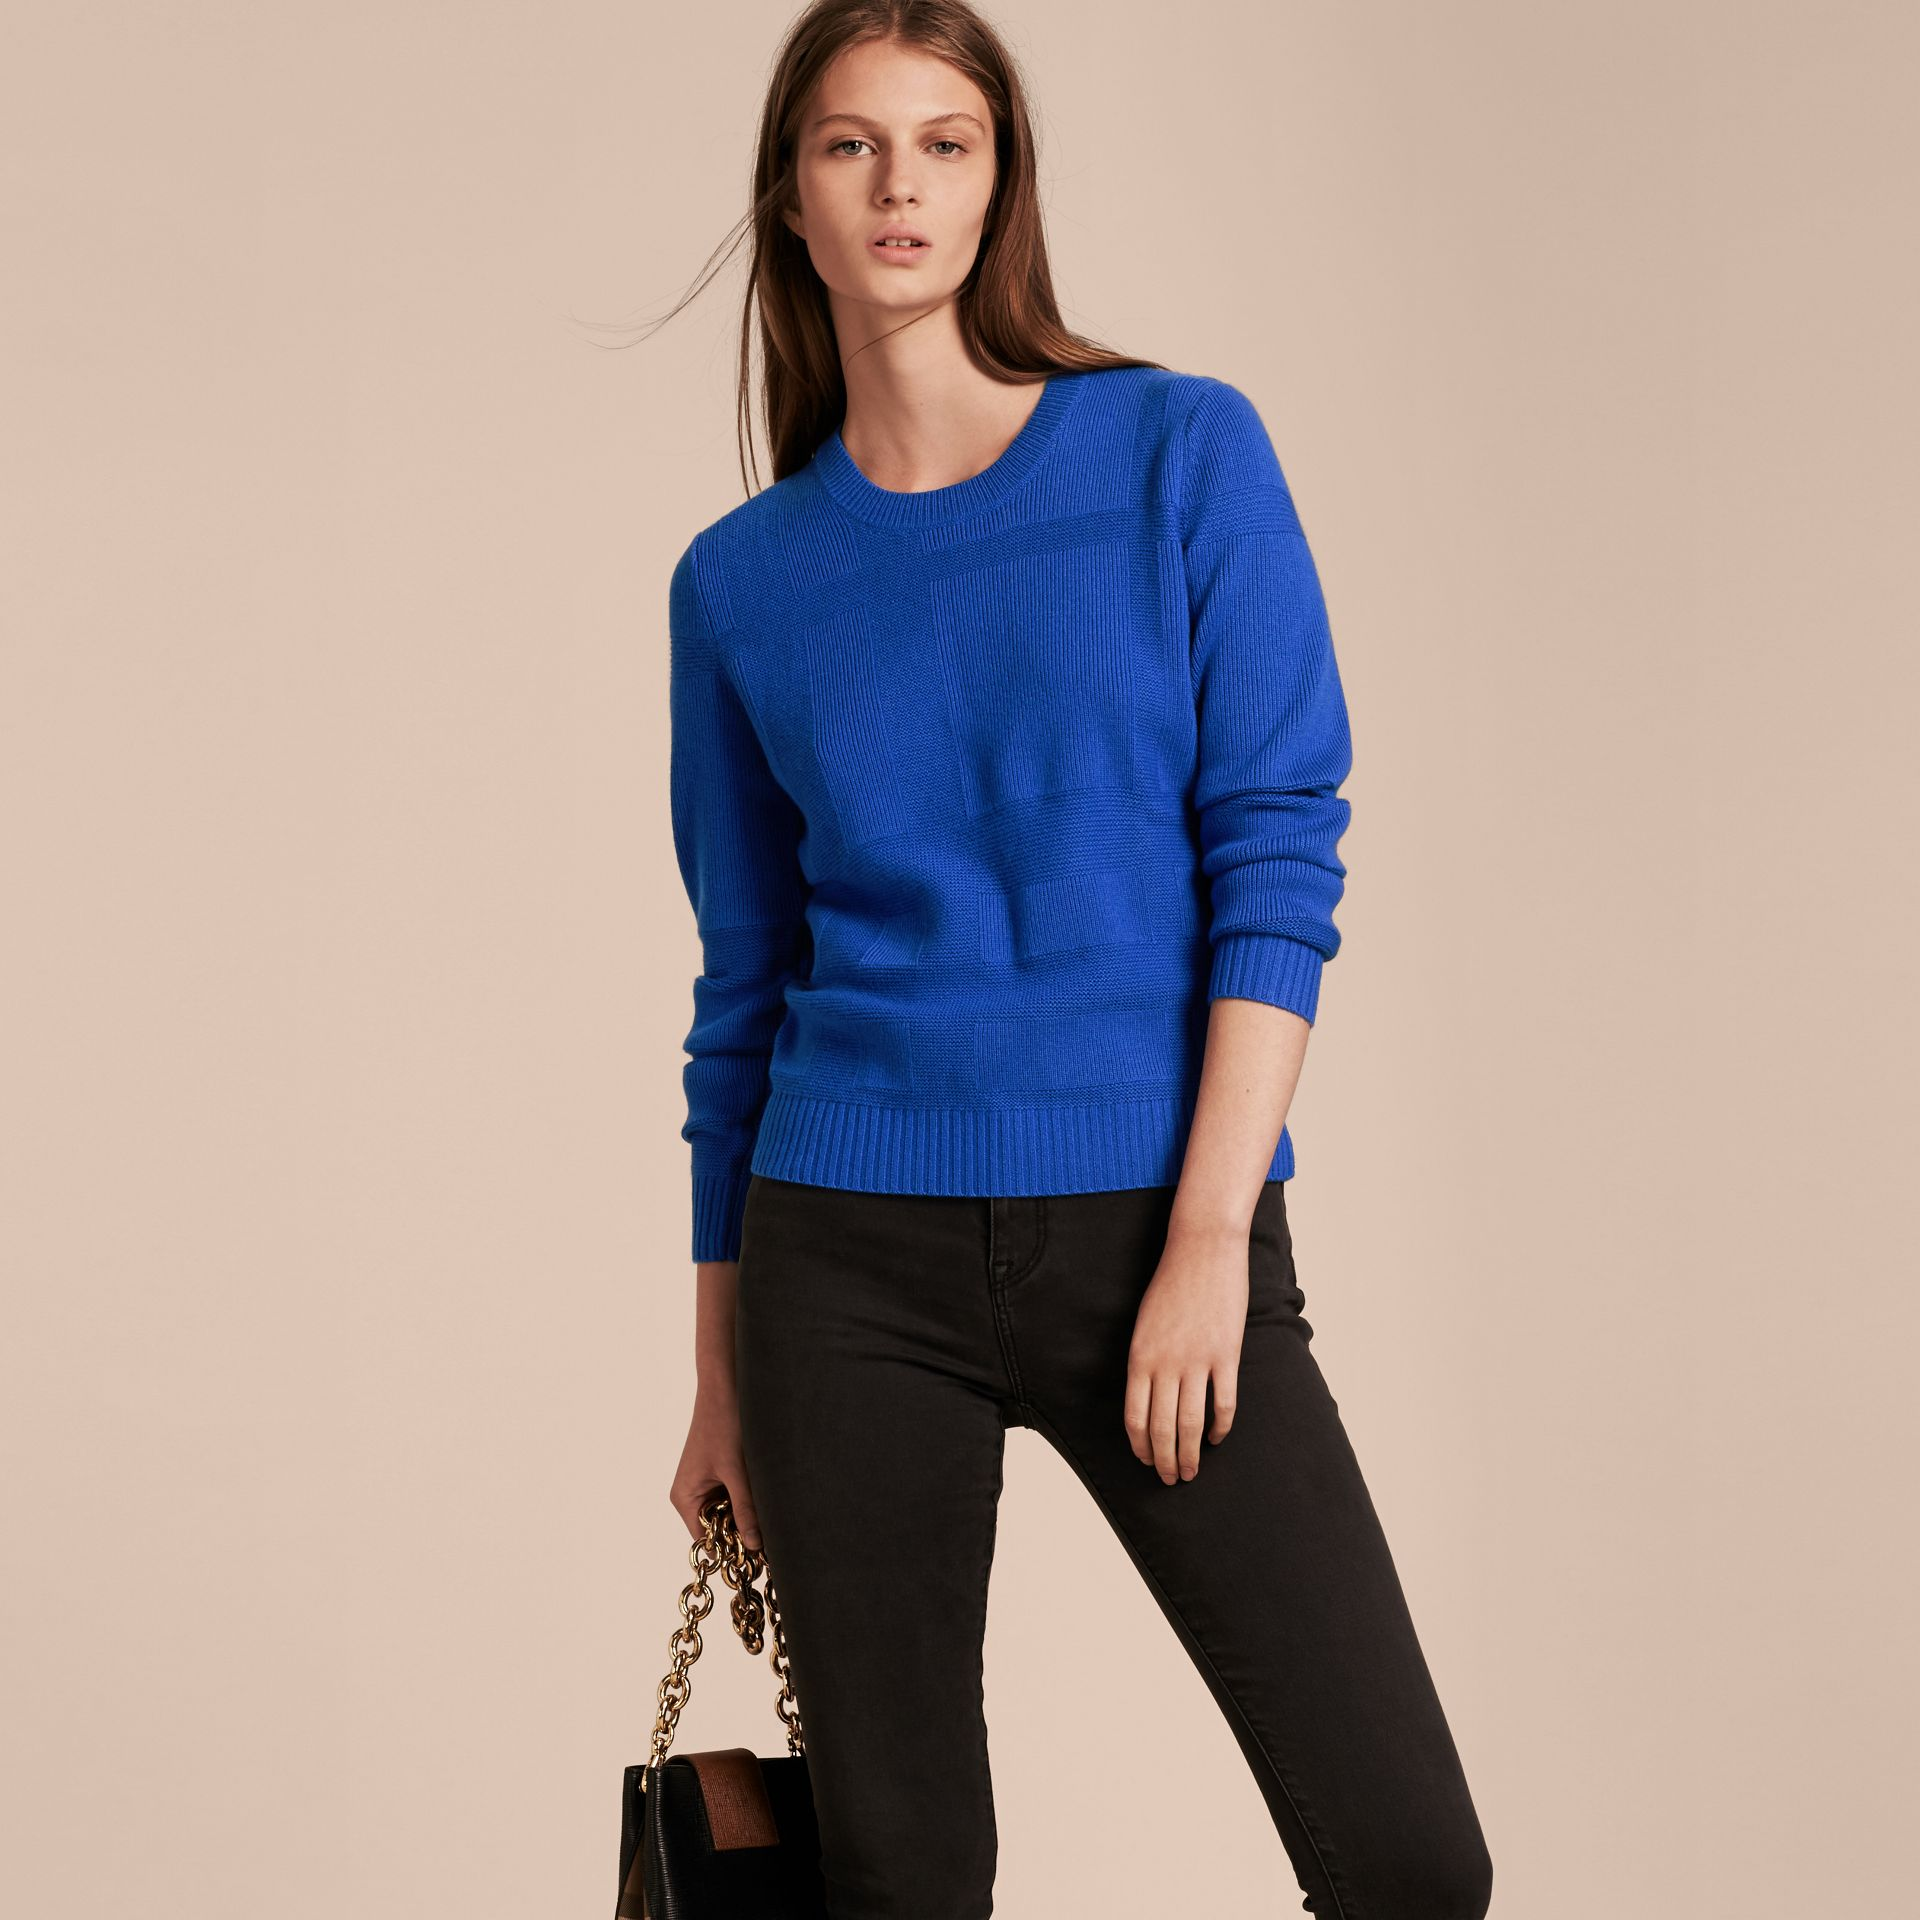 Sapphire blue Check-knit Wool Cashmere Sweater Sapphire Blue - gallery image 6